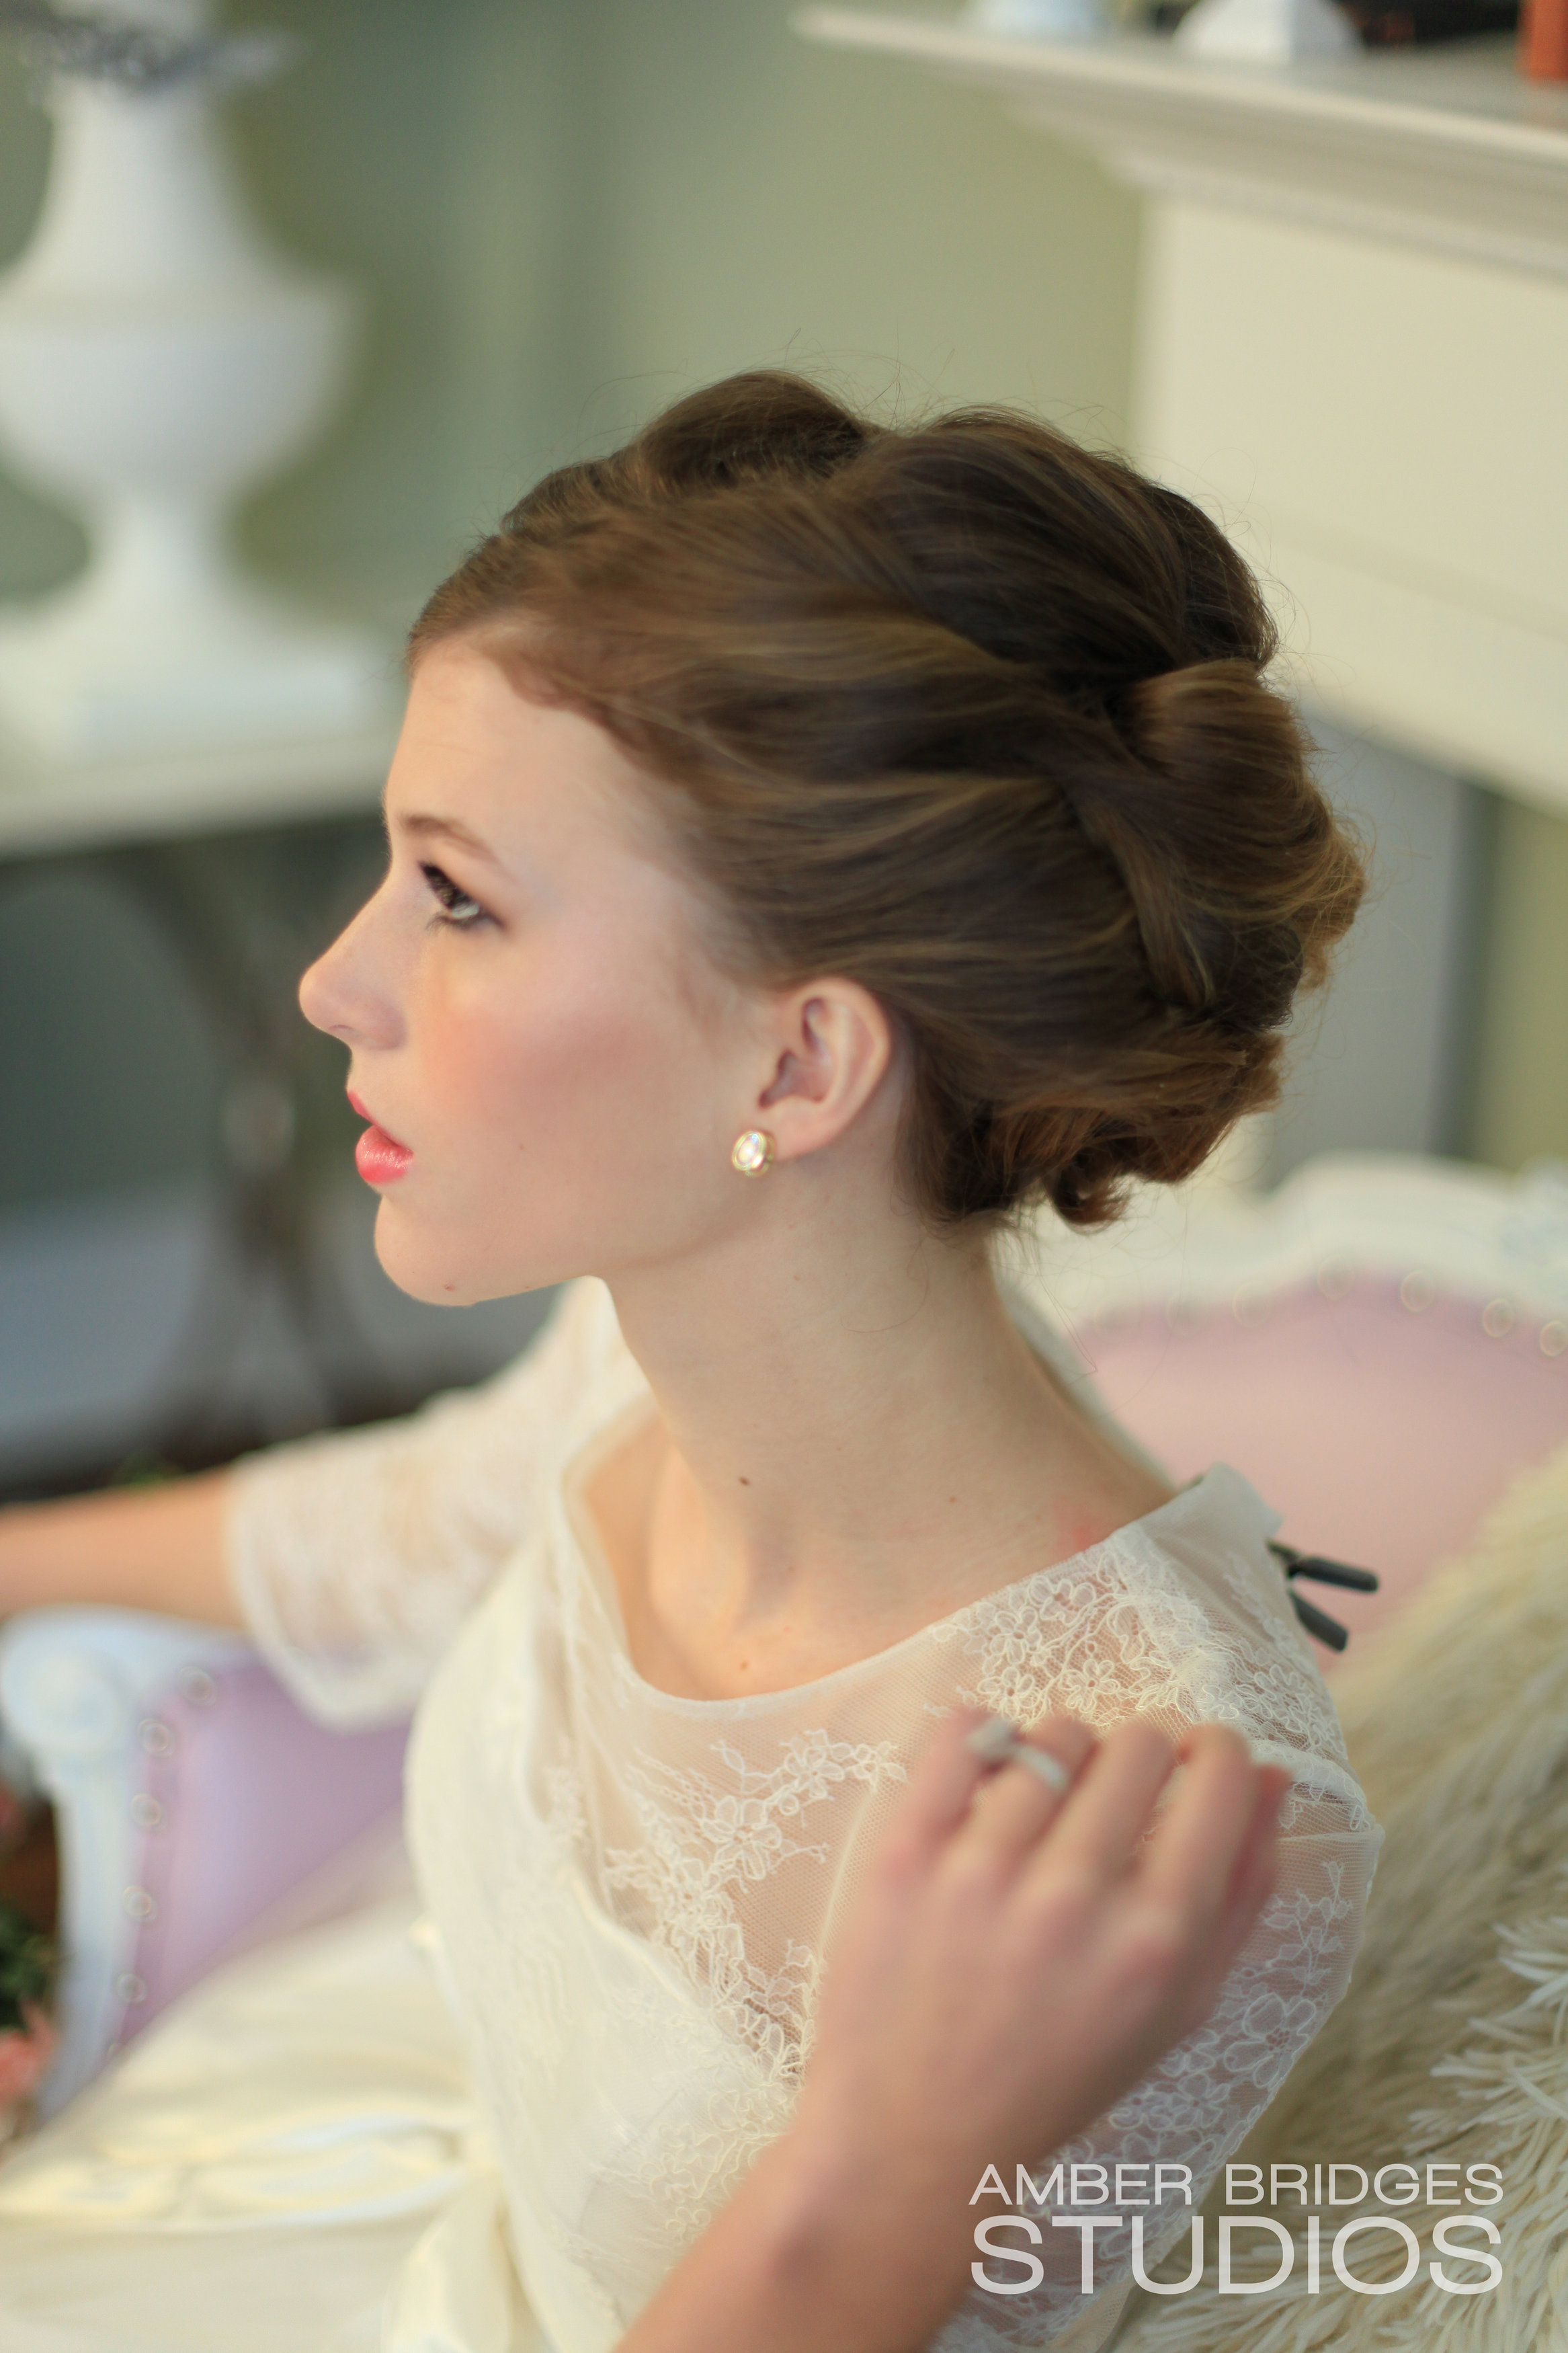 amber bridges studios cincy weddings by maura classic wedding hair cincinnati hairstylists